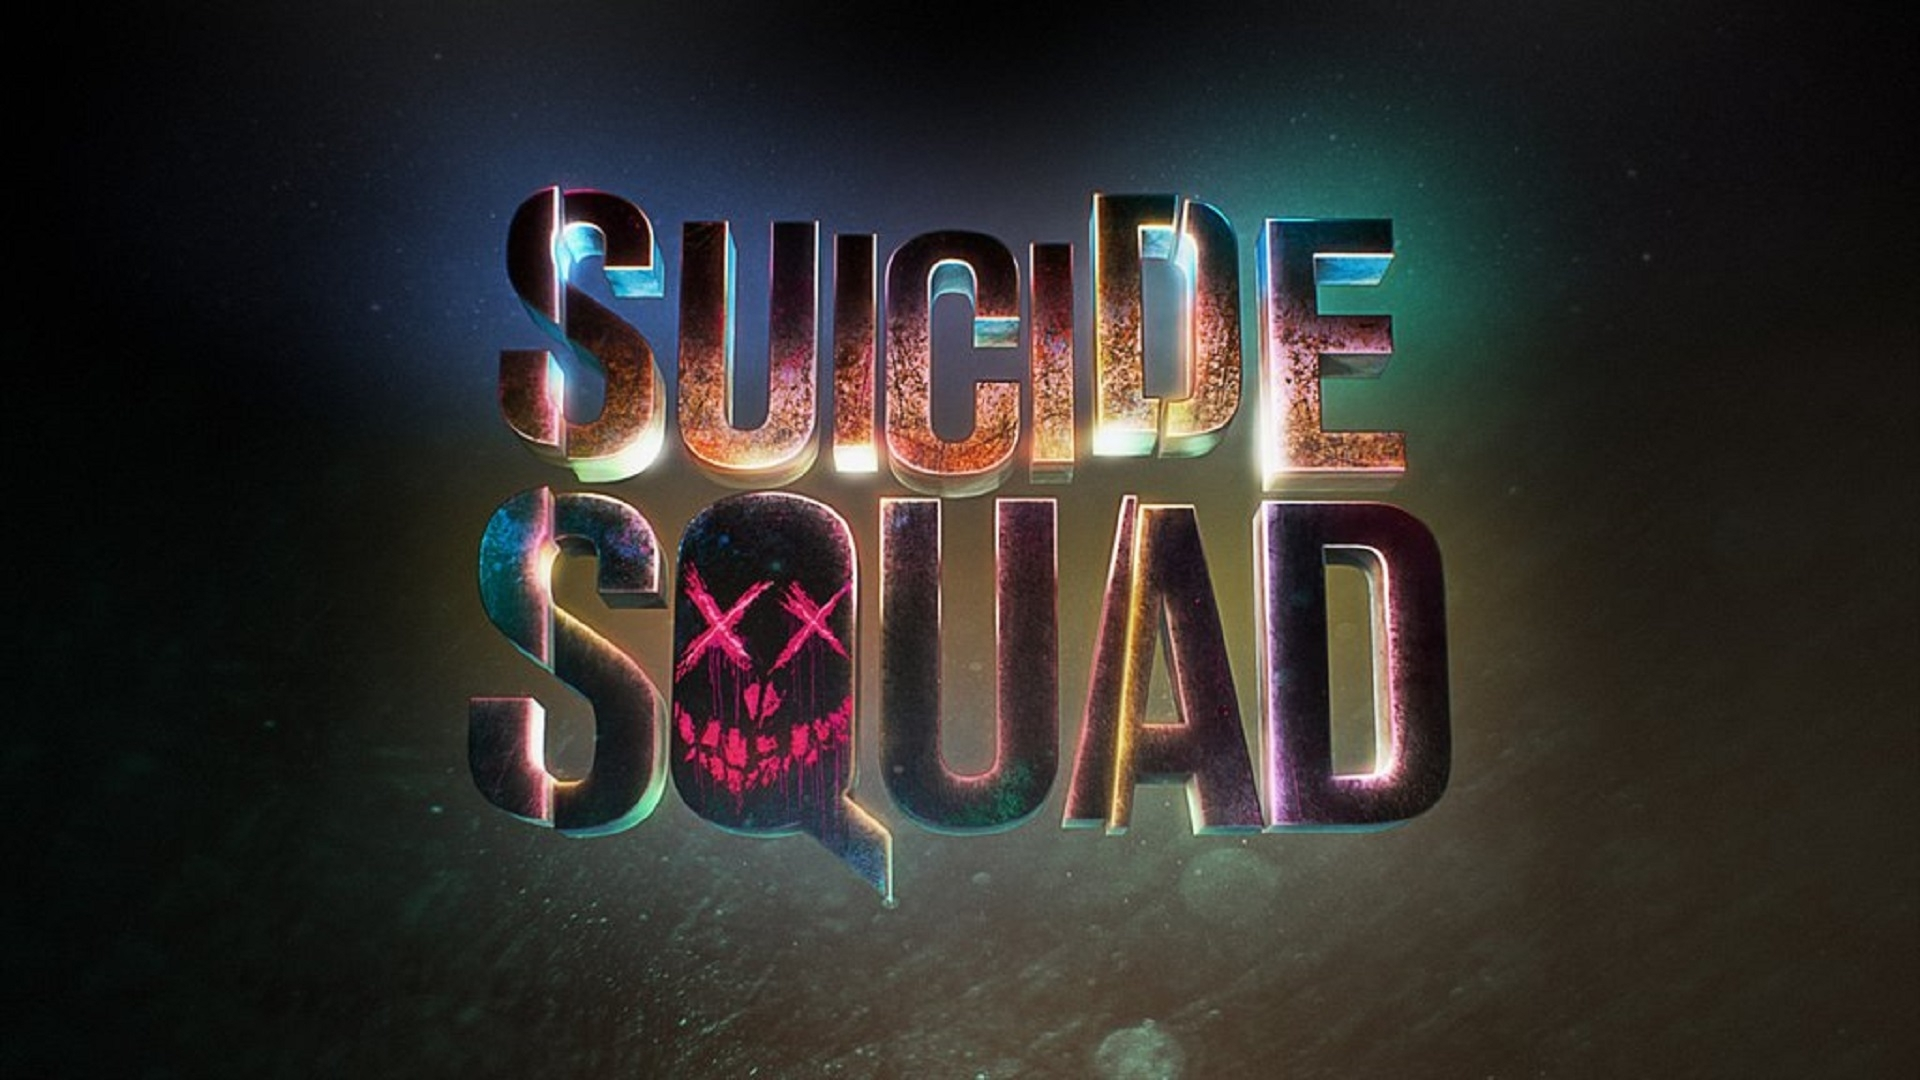 astonishing suicide squad wallpaper hd download